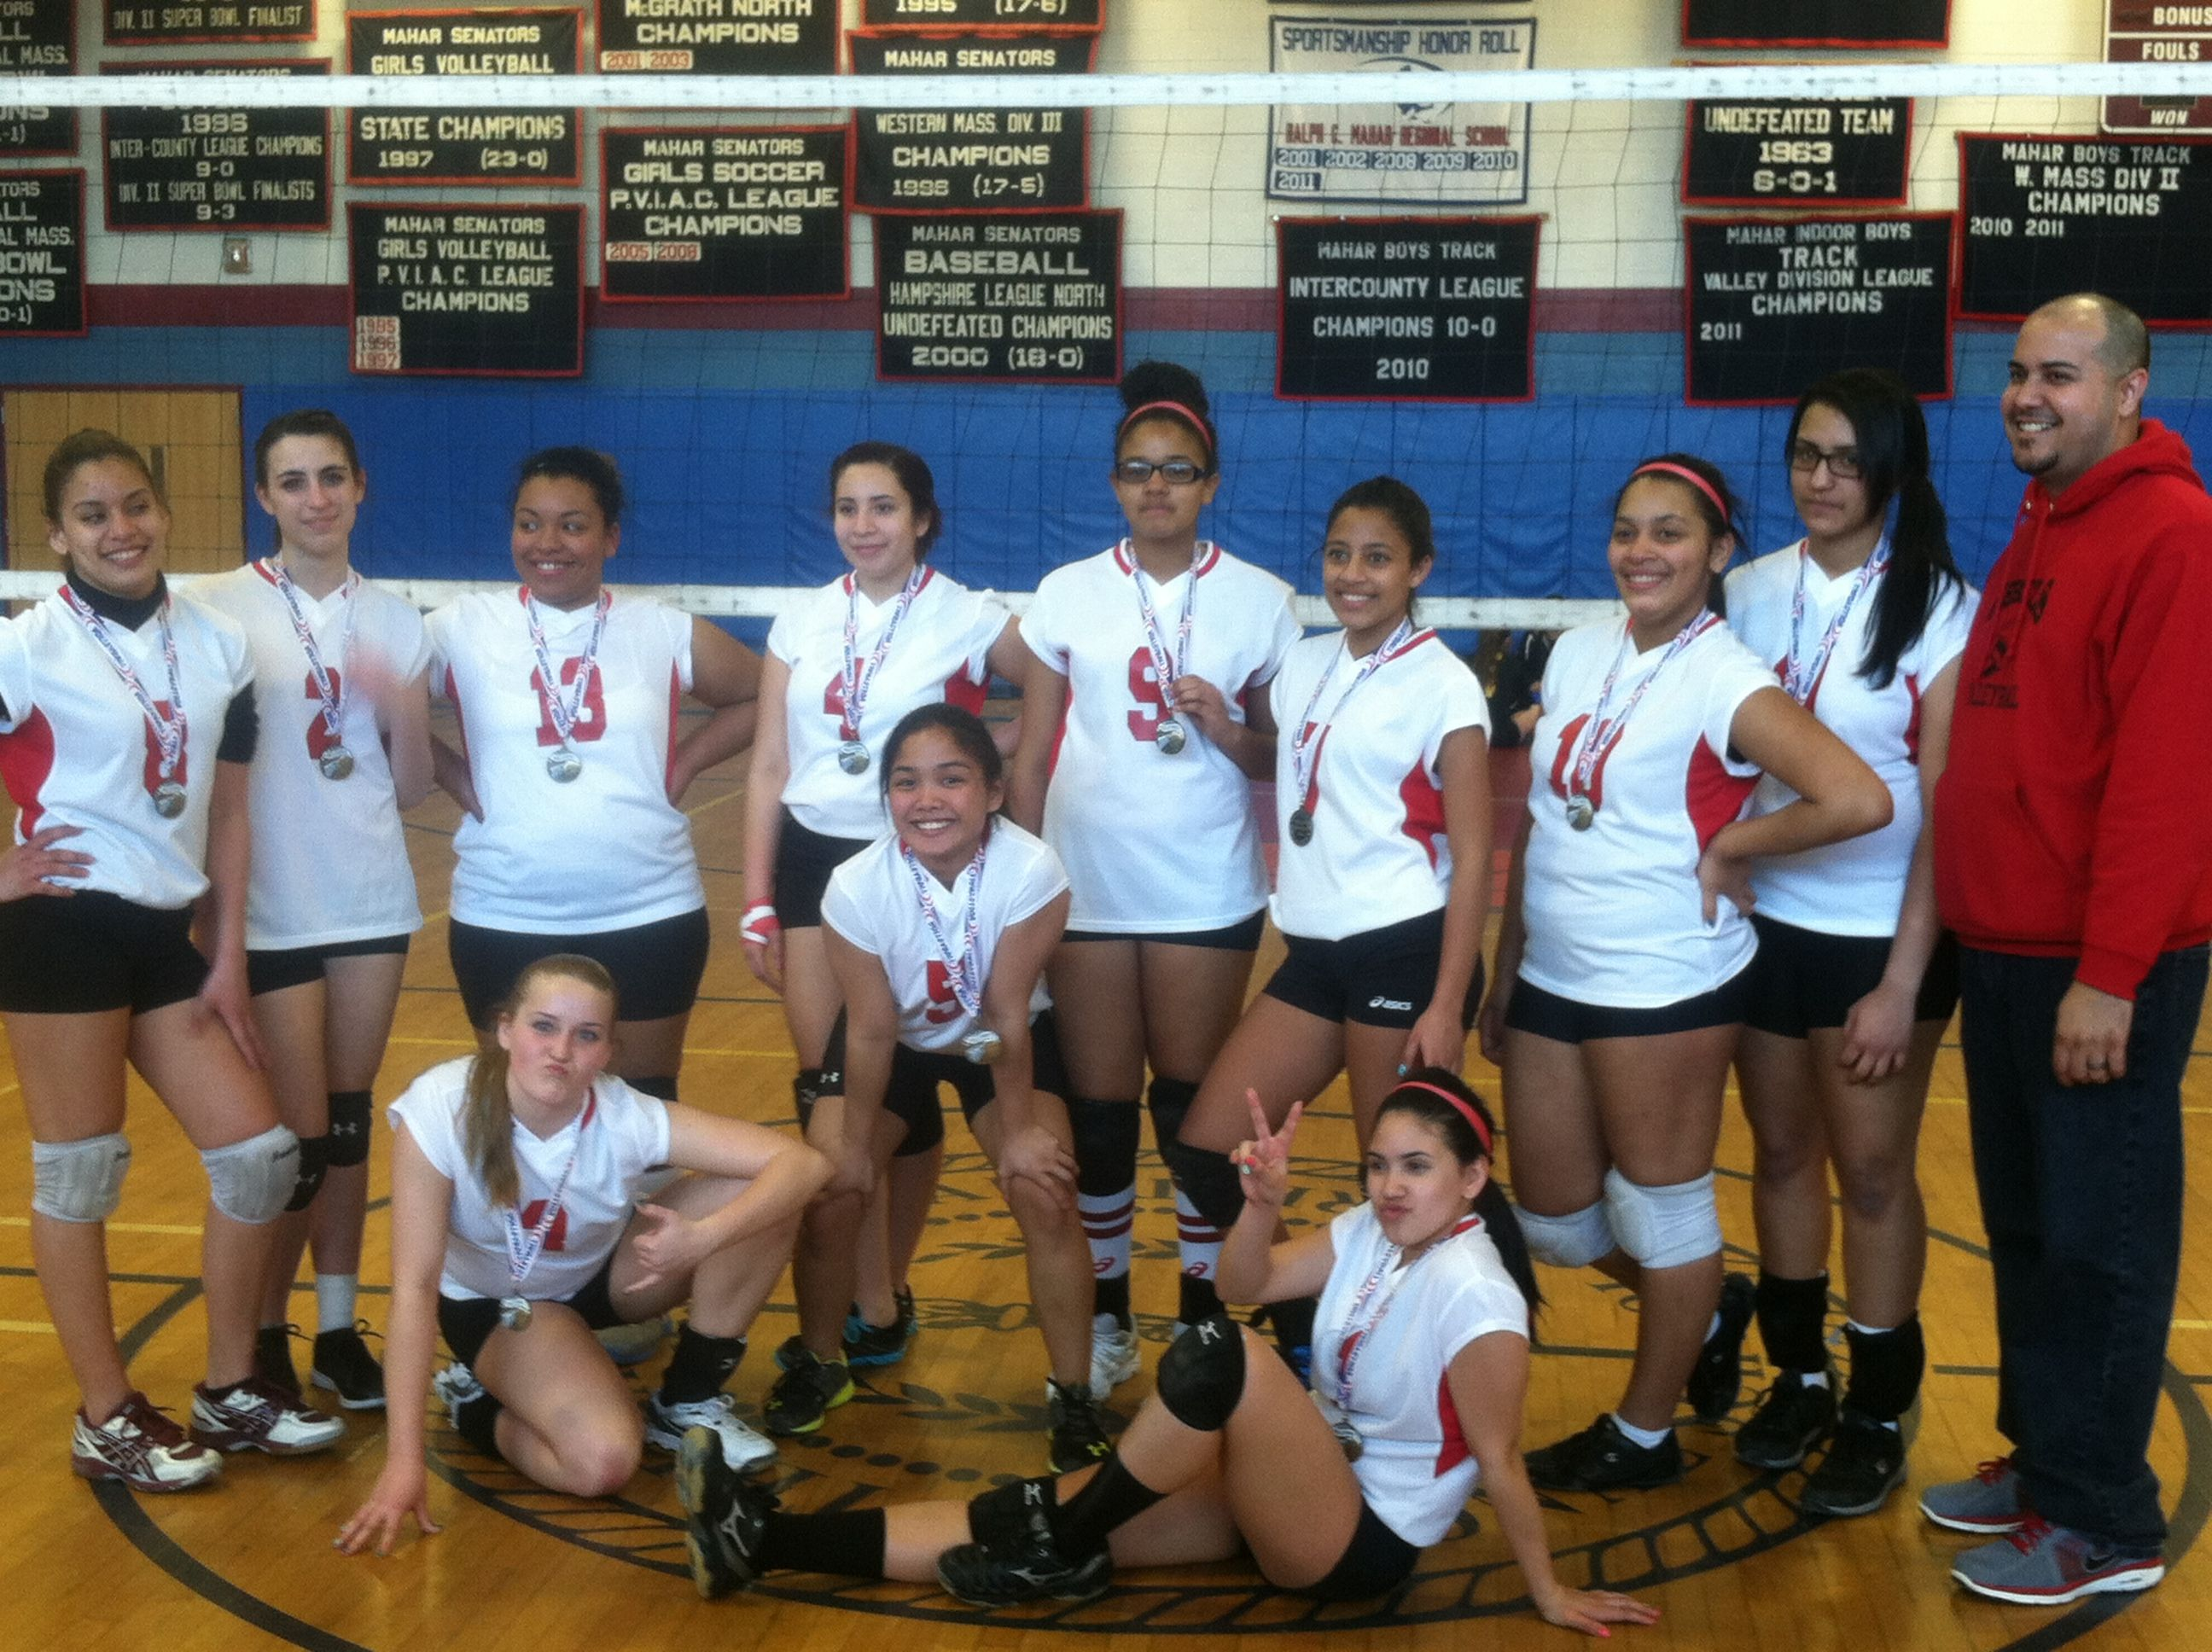 Springfield Rebels Volleyball Champion Sports